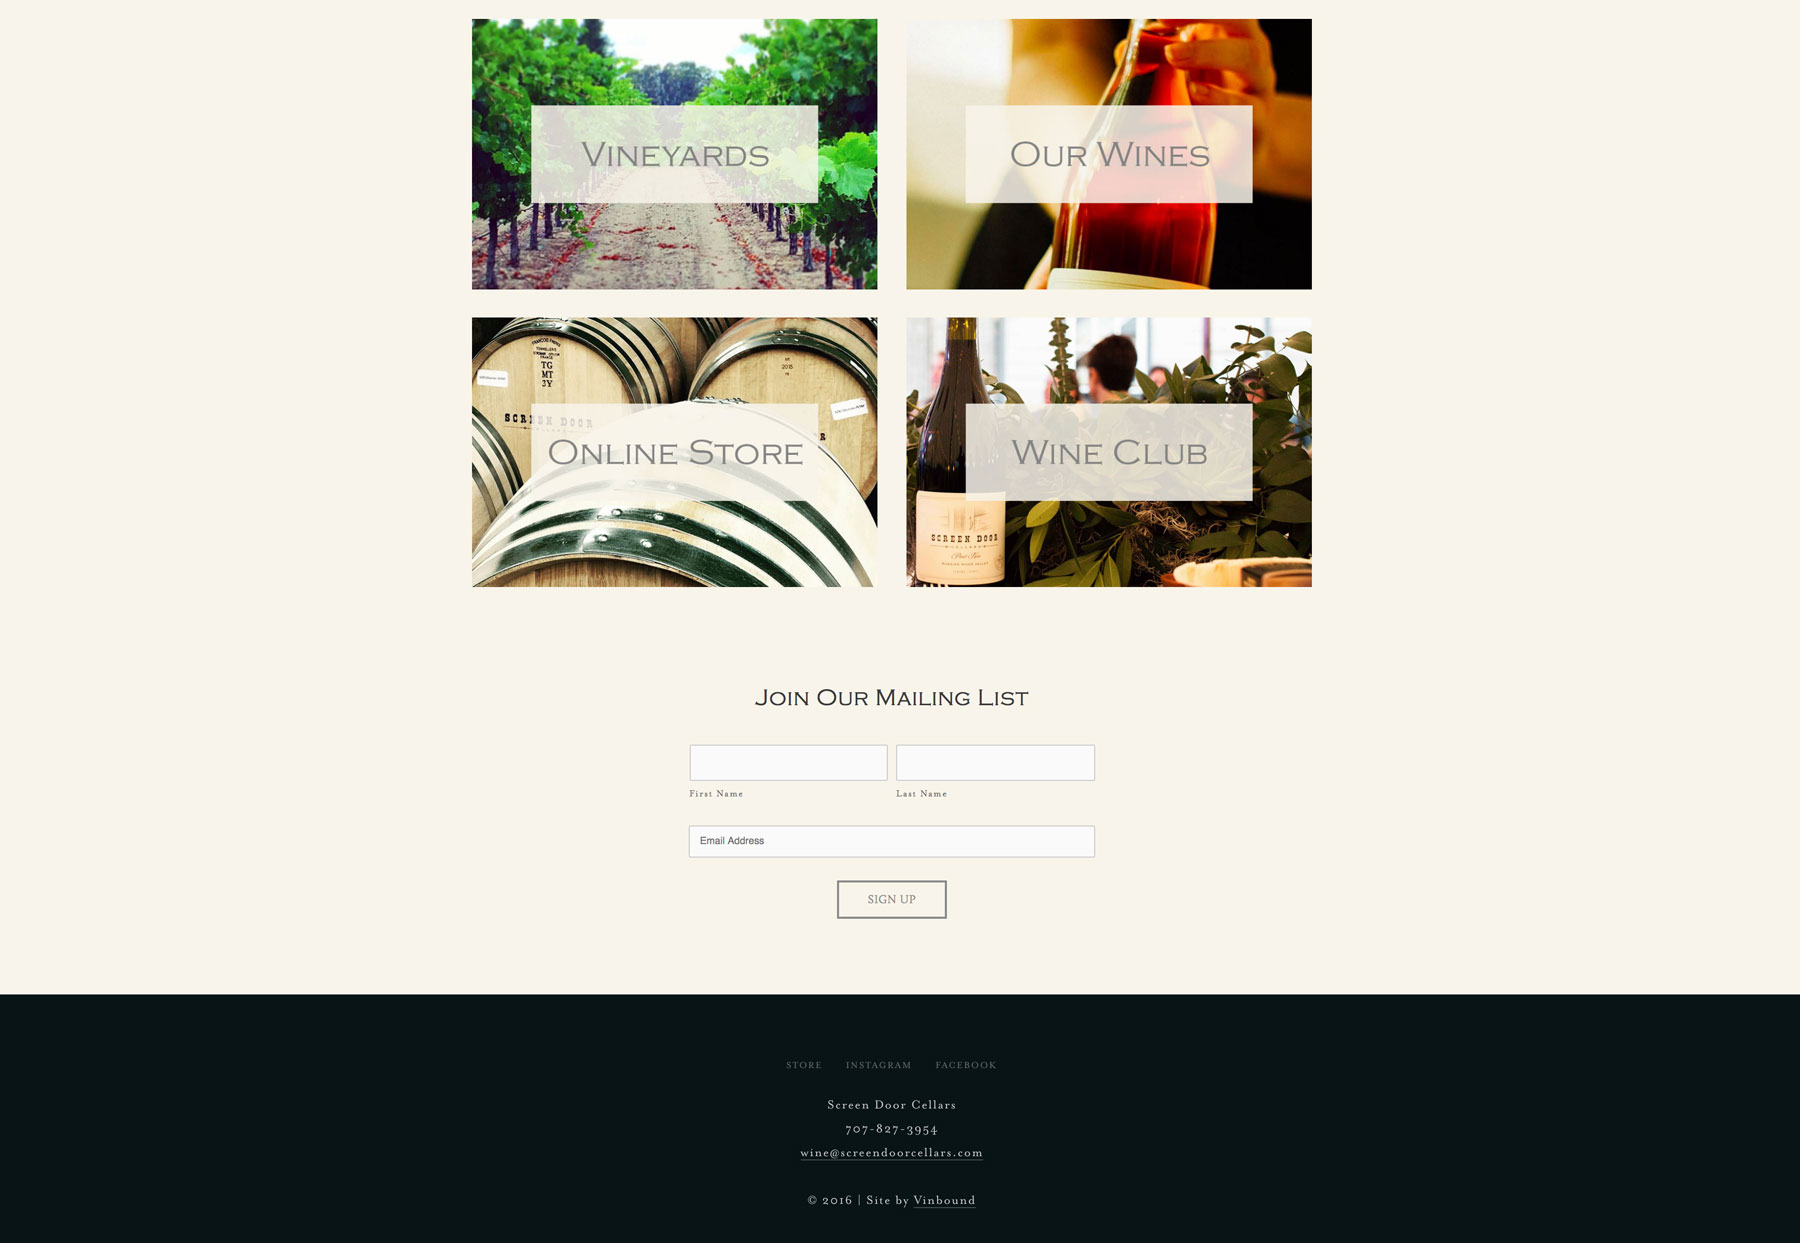 Merveilleux Our Squarespace Website Package Was The Perfect Fit For Screen Door Cellars.  It Provided A Clean, Modern Canvas To Show Off The Best Winery Photos And  Tell ...